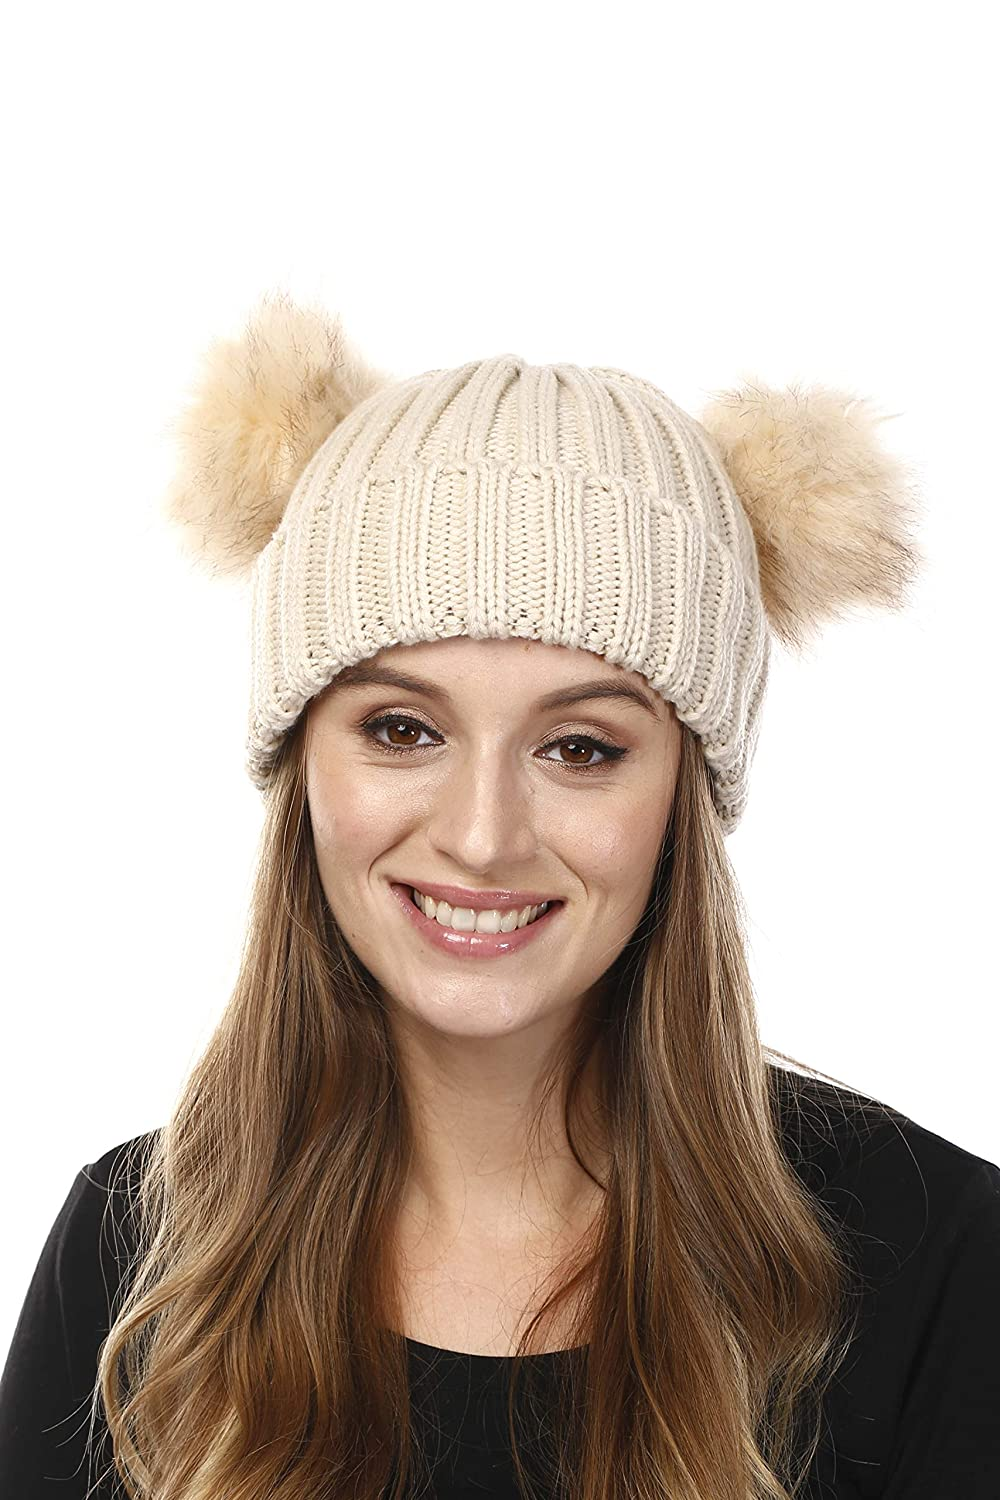 cce281343 Fashion 21 Women's Winter Trendy Warm Knit Beanie Hat with Pom Pom Ears